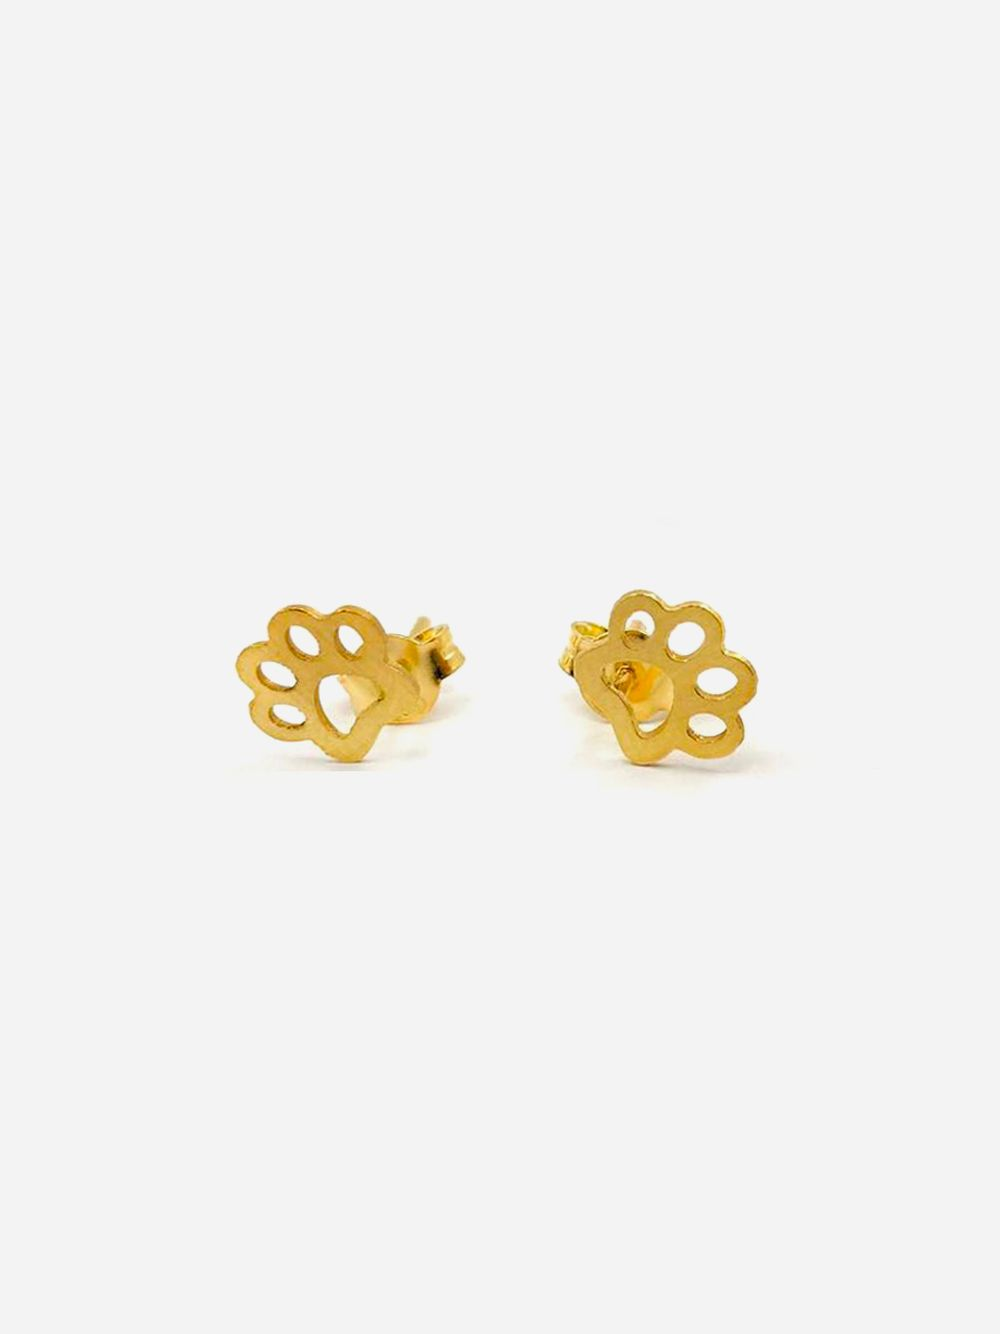 Gold Earrings Dog Footprint | Made to Envy